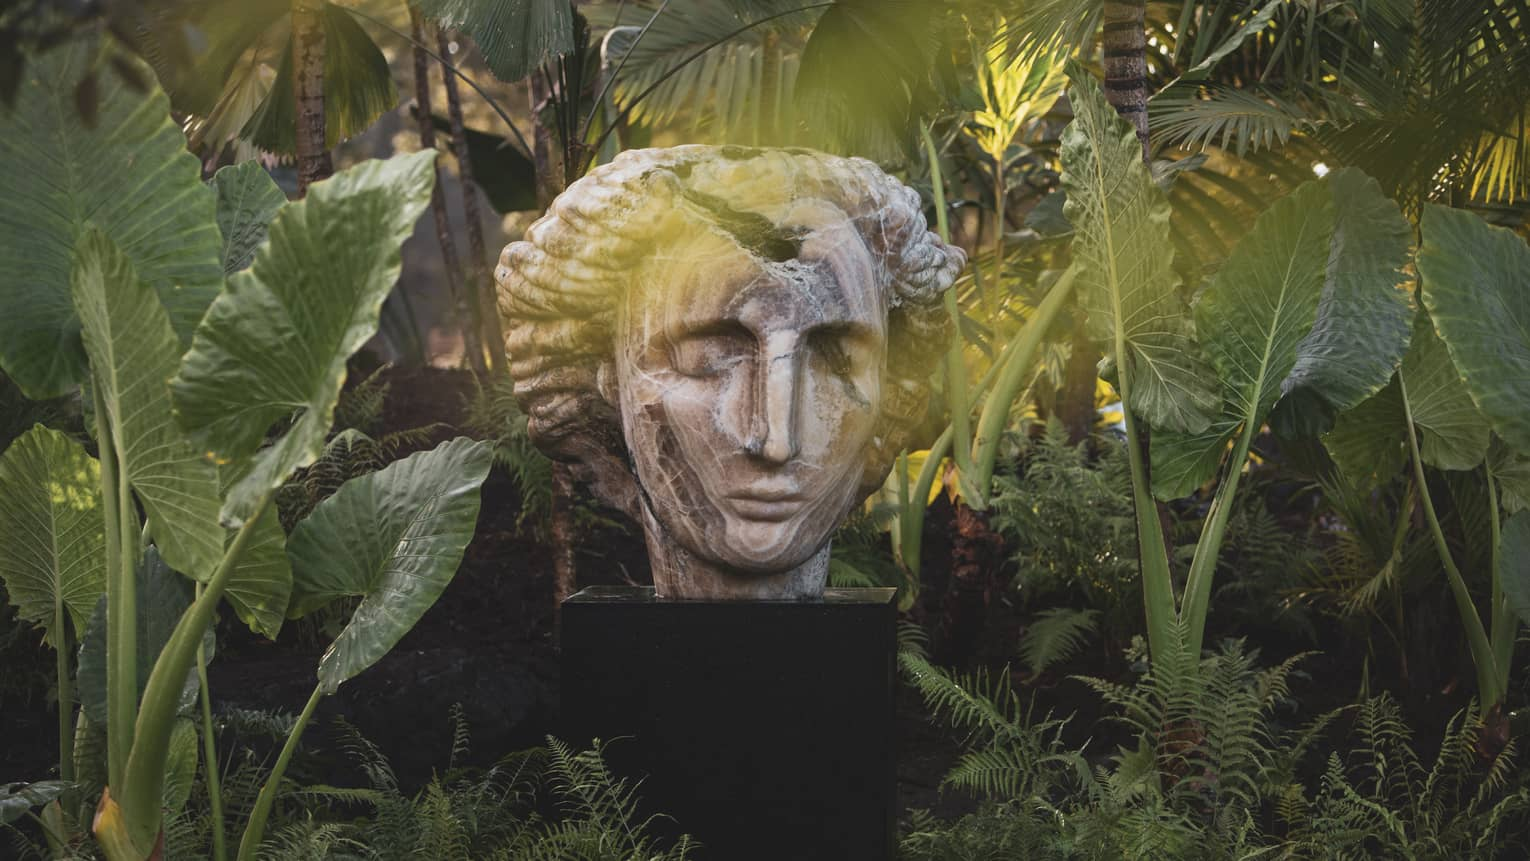 Bust with closed eyes amid tropical foliage